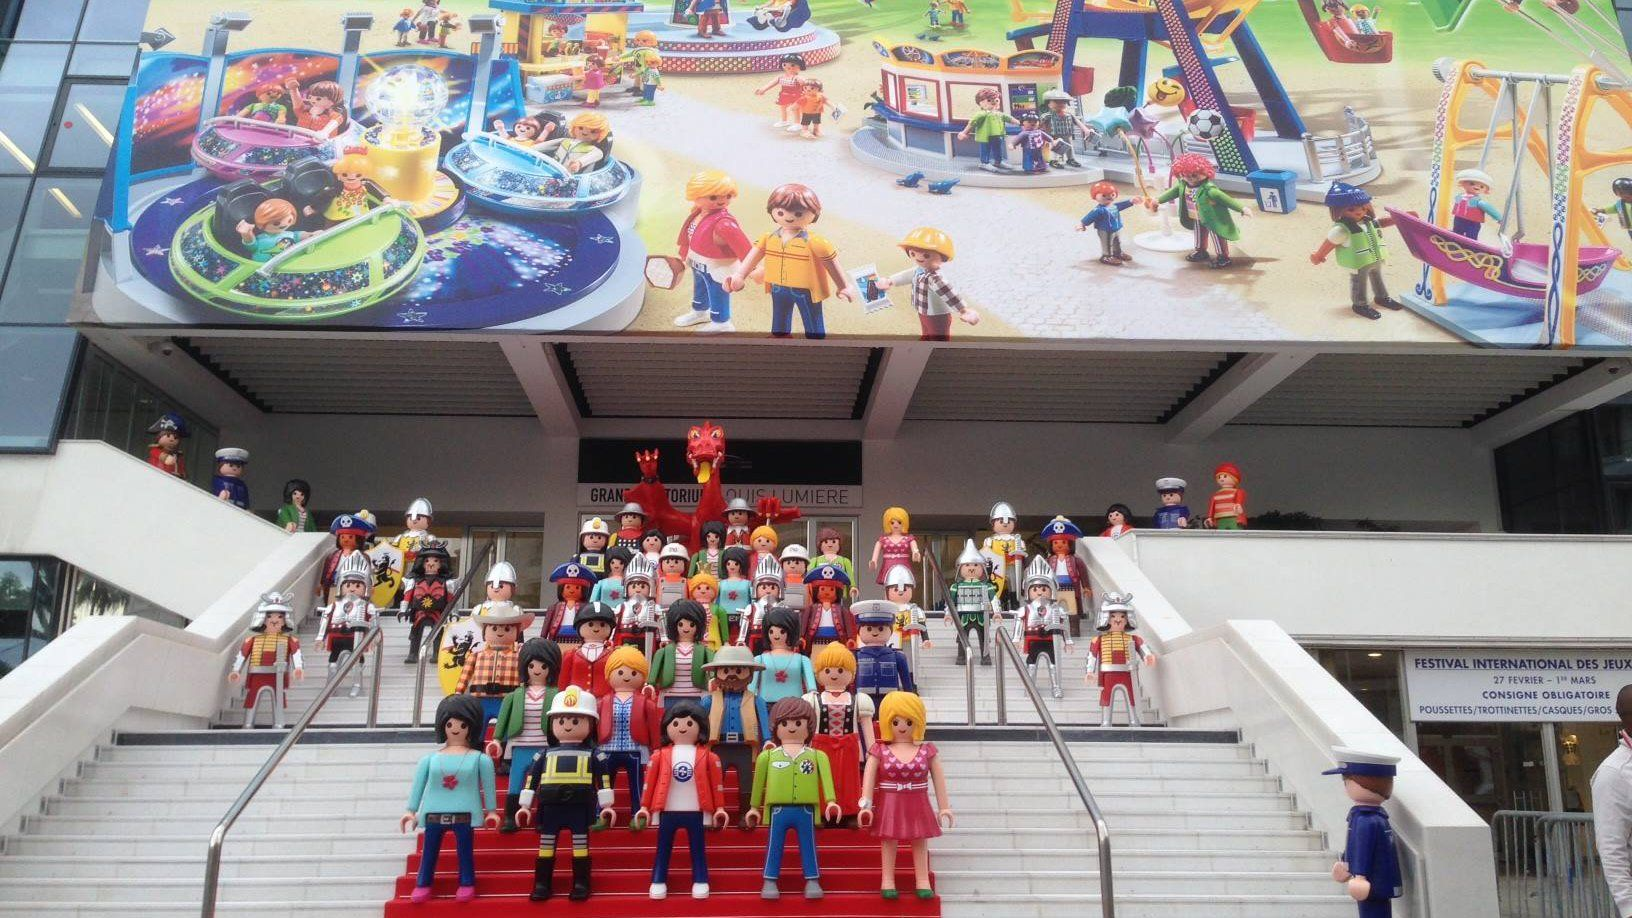 Playmobil Geant Photo De Groupe N 32 Festival Photos De Groupe Jeux